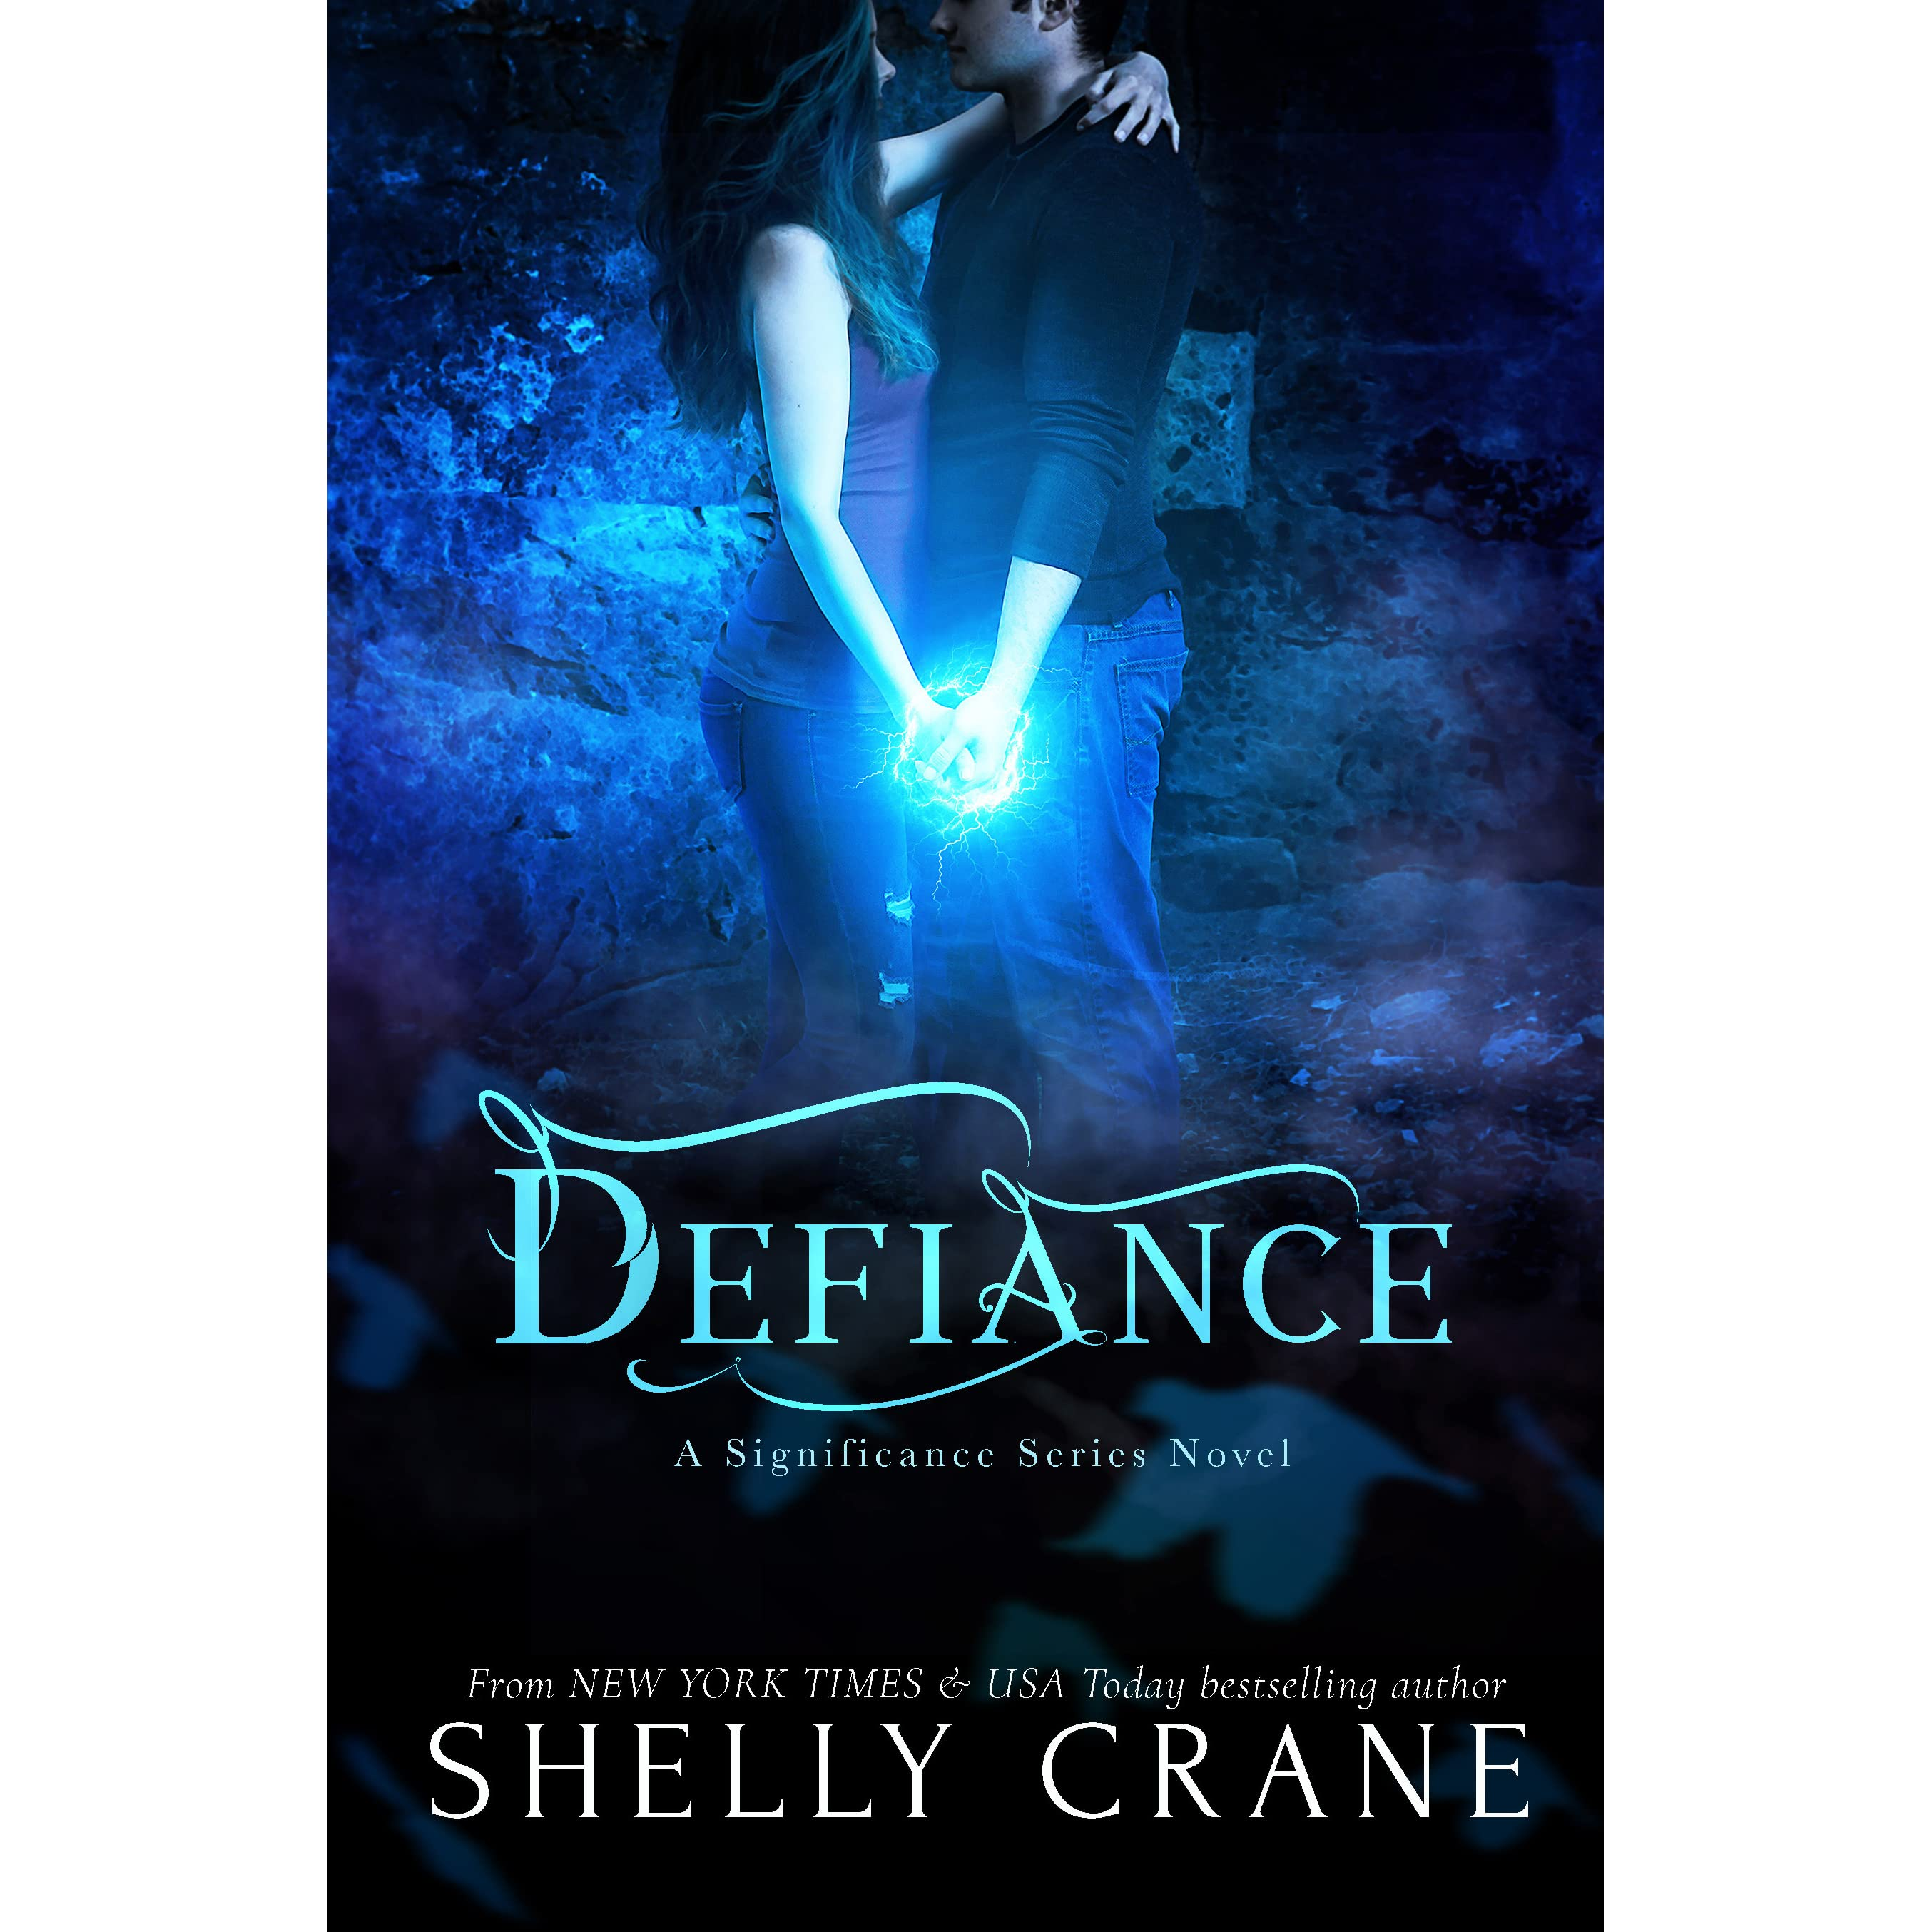 SHELLY CRANE SIGNIFICANCE SERIES EBOOK